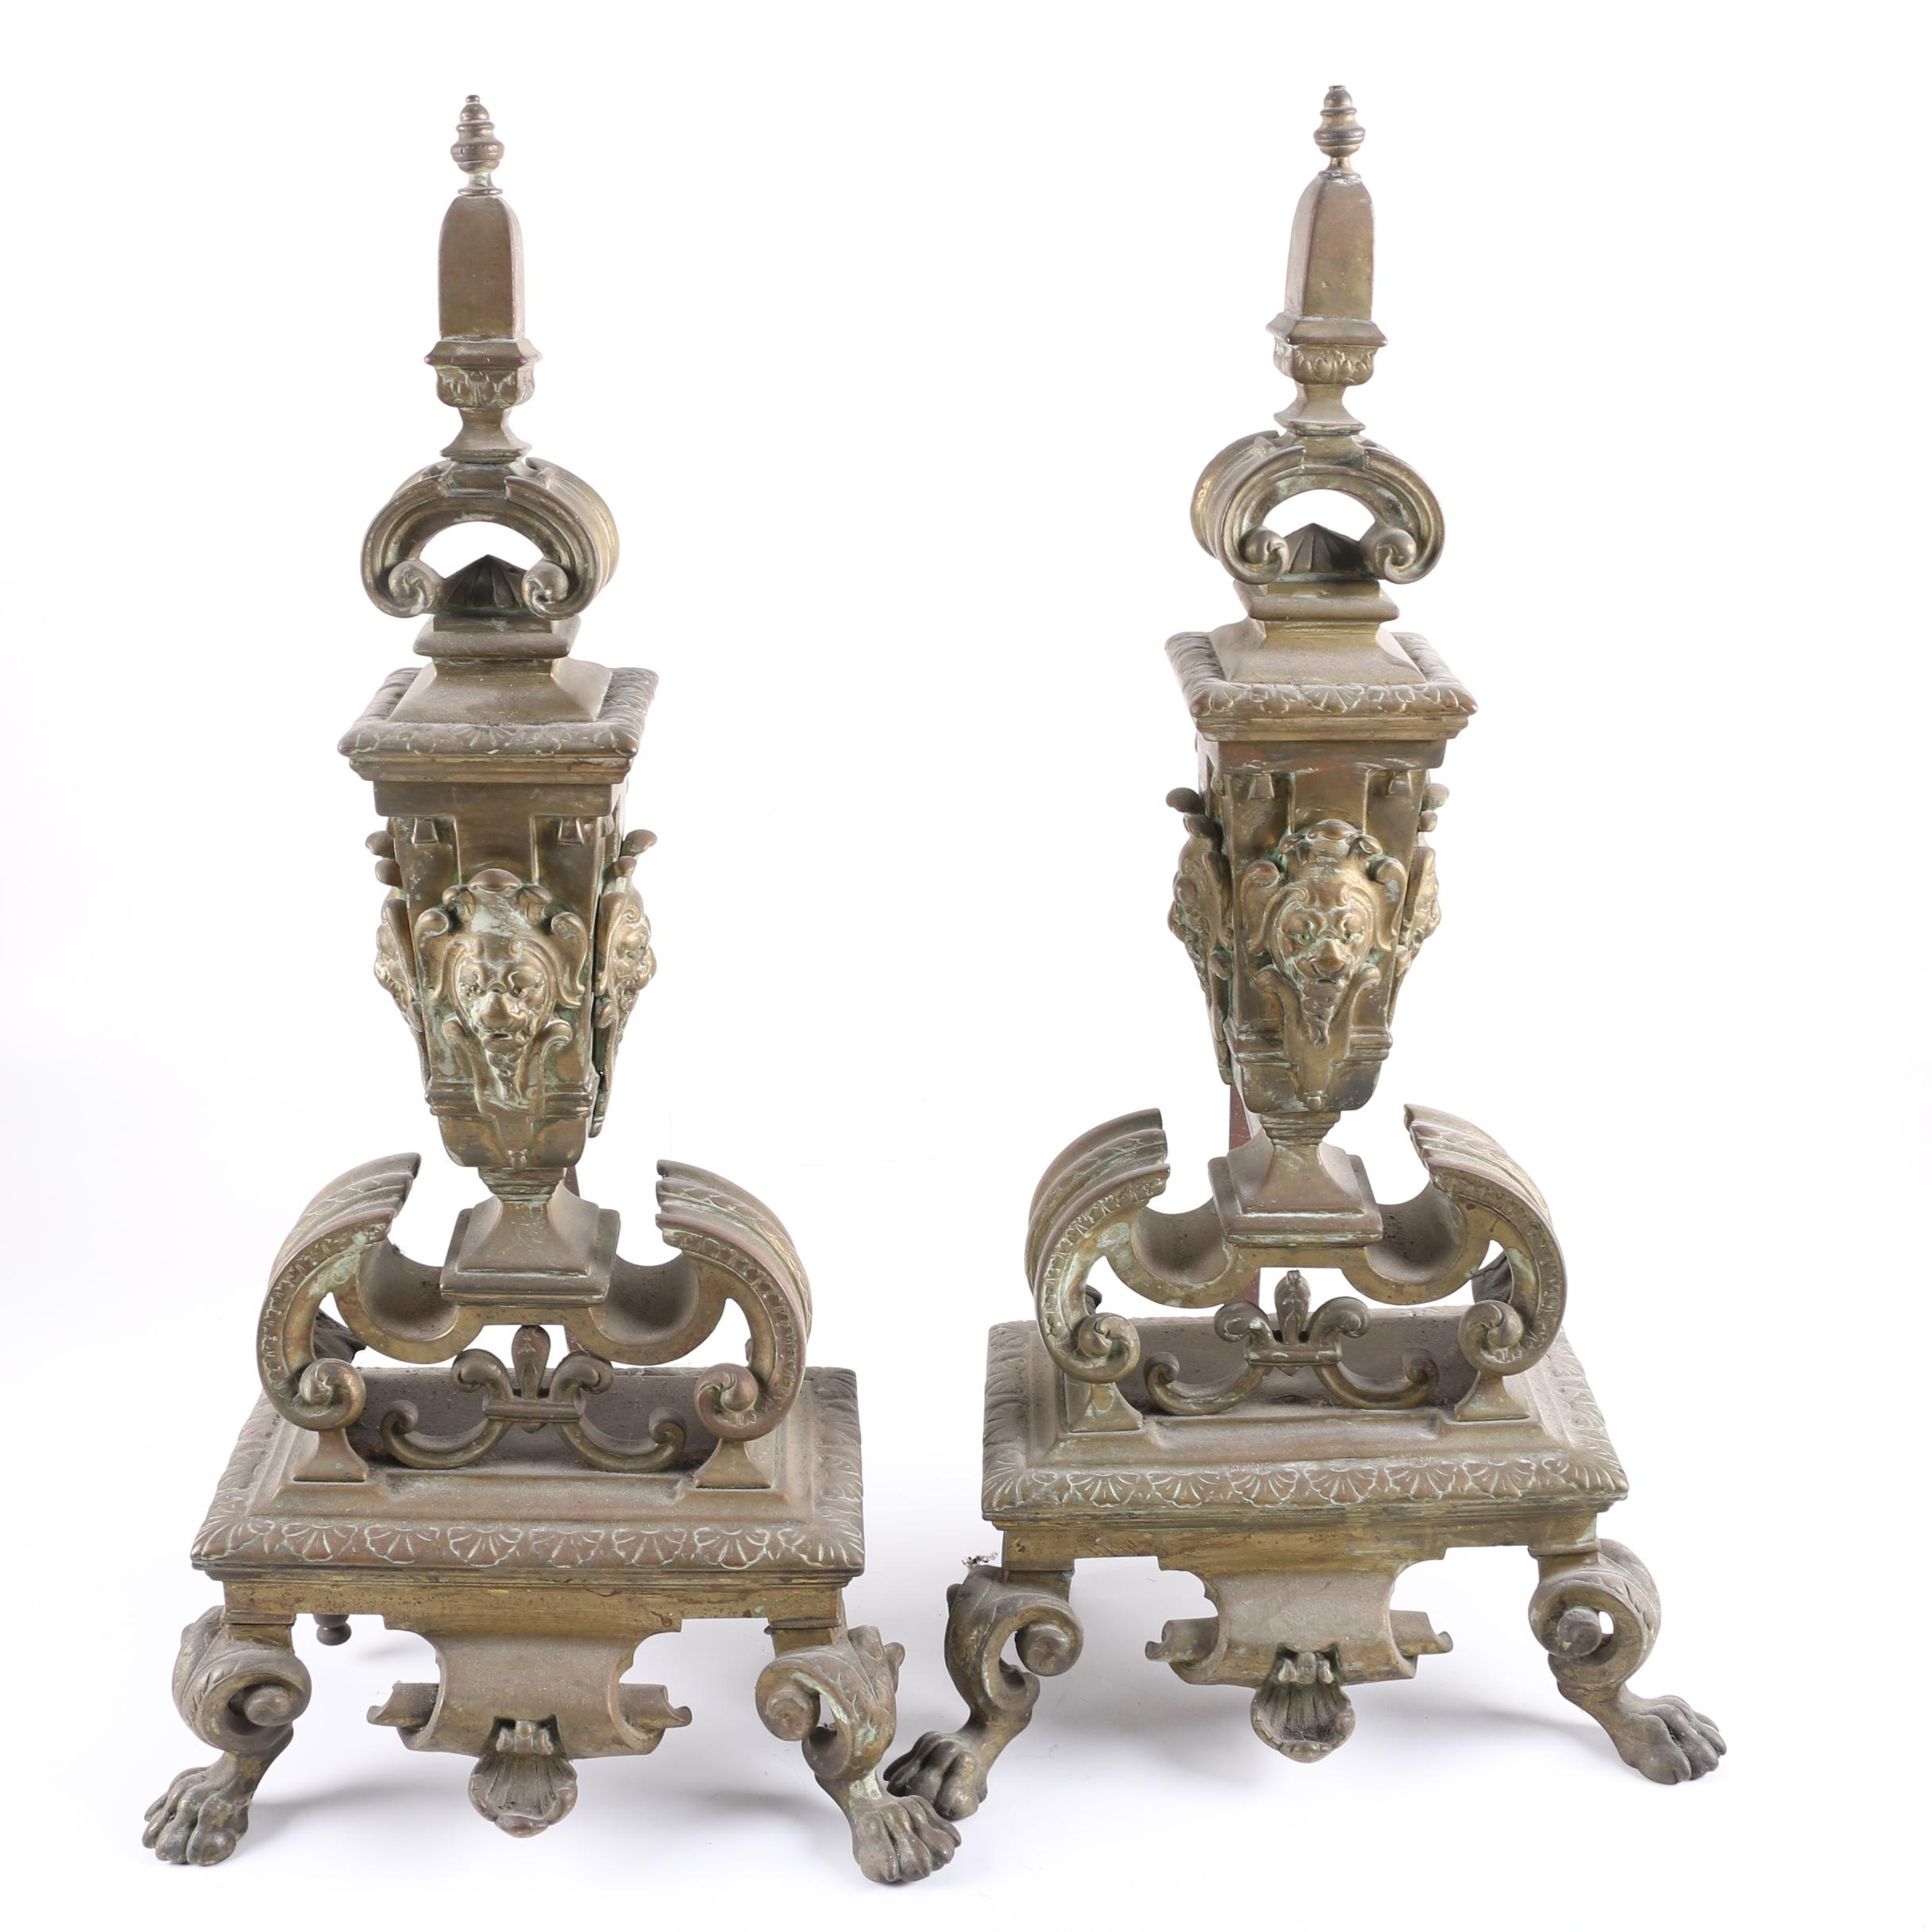 Antique Baroque Brass Andirons